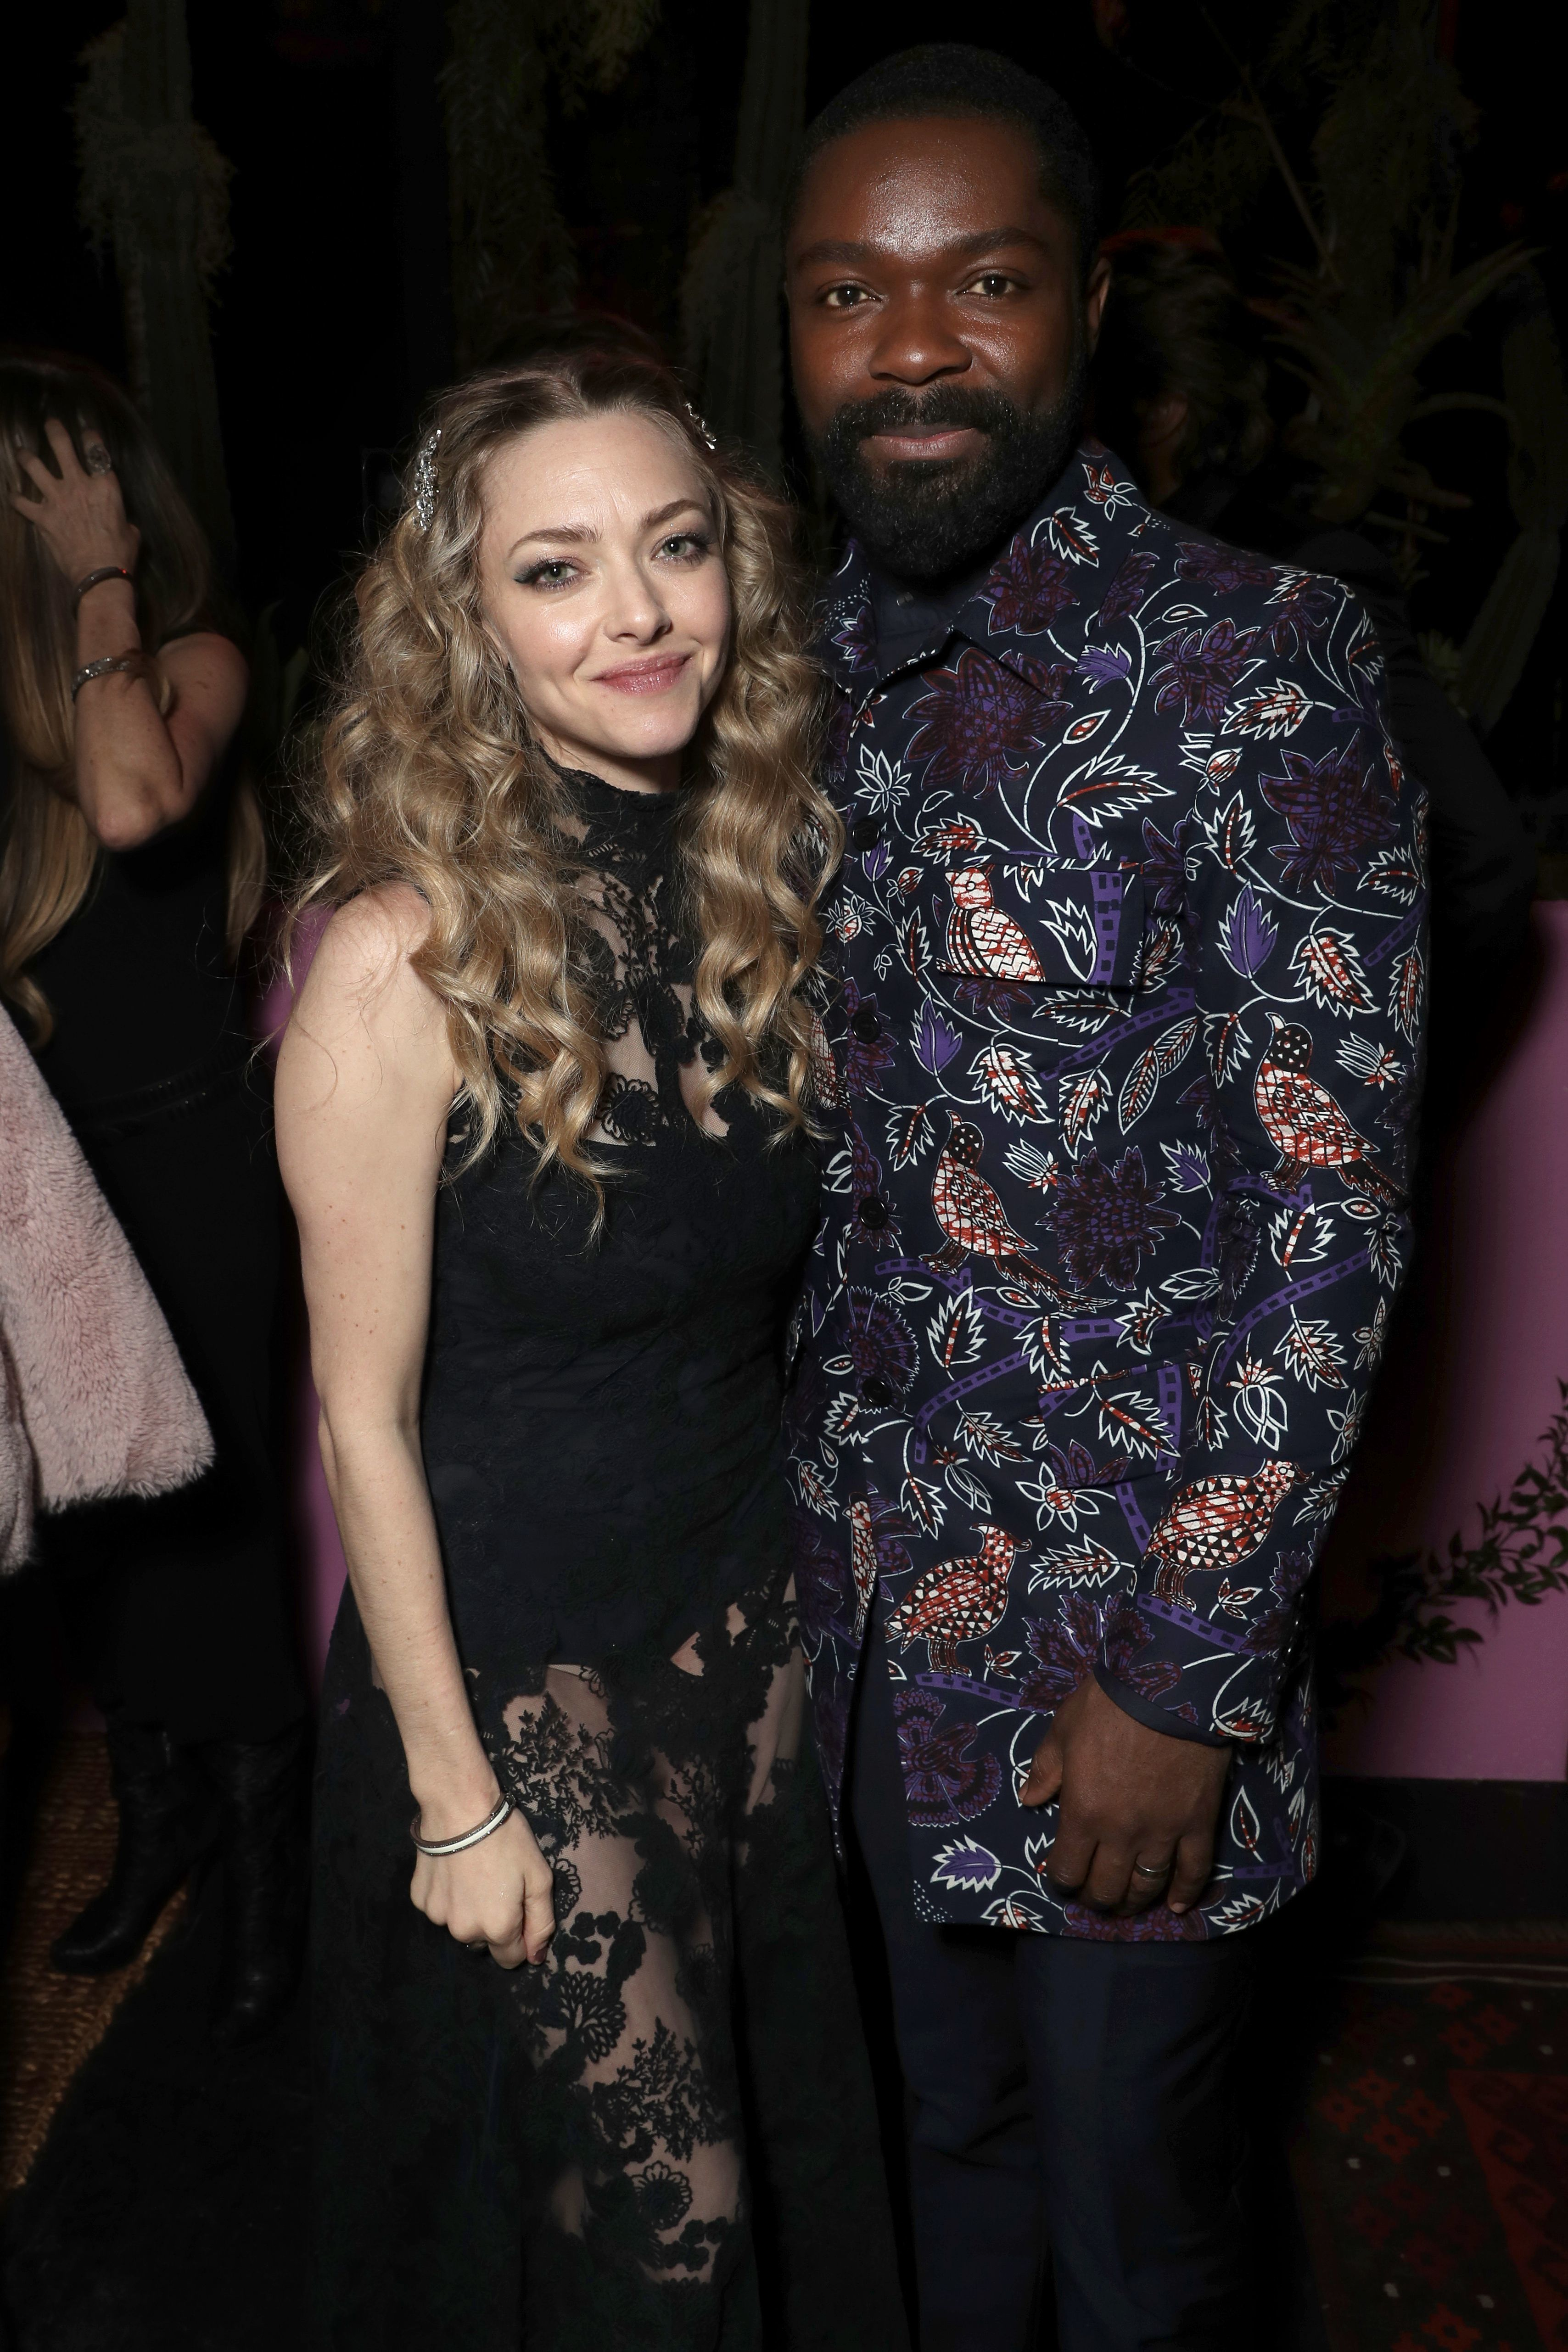 """Amanda Seyfried and David Oyelowo attend the """"Gringo"""" film premiere party in Los Angeles on March 6, 2018."""